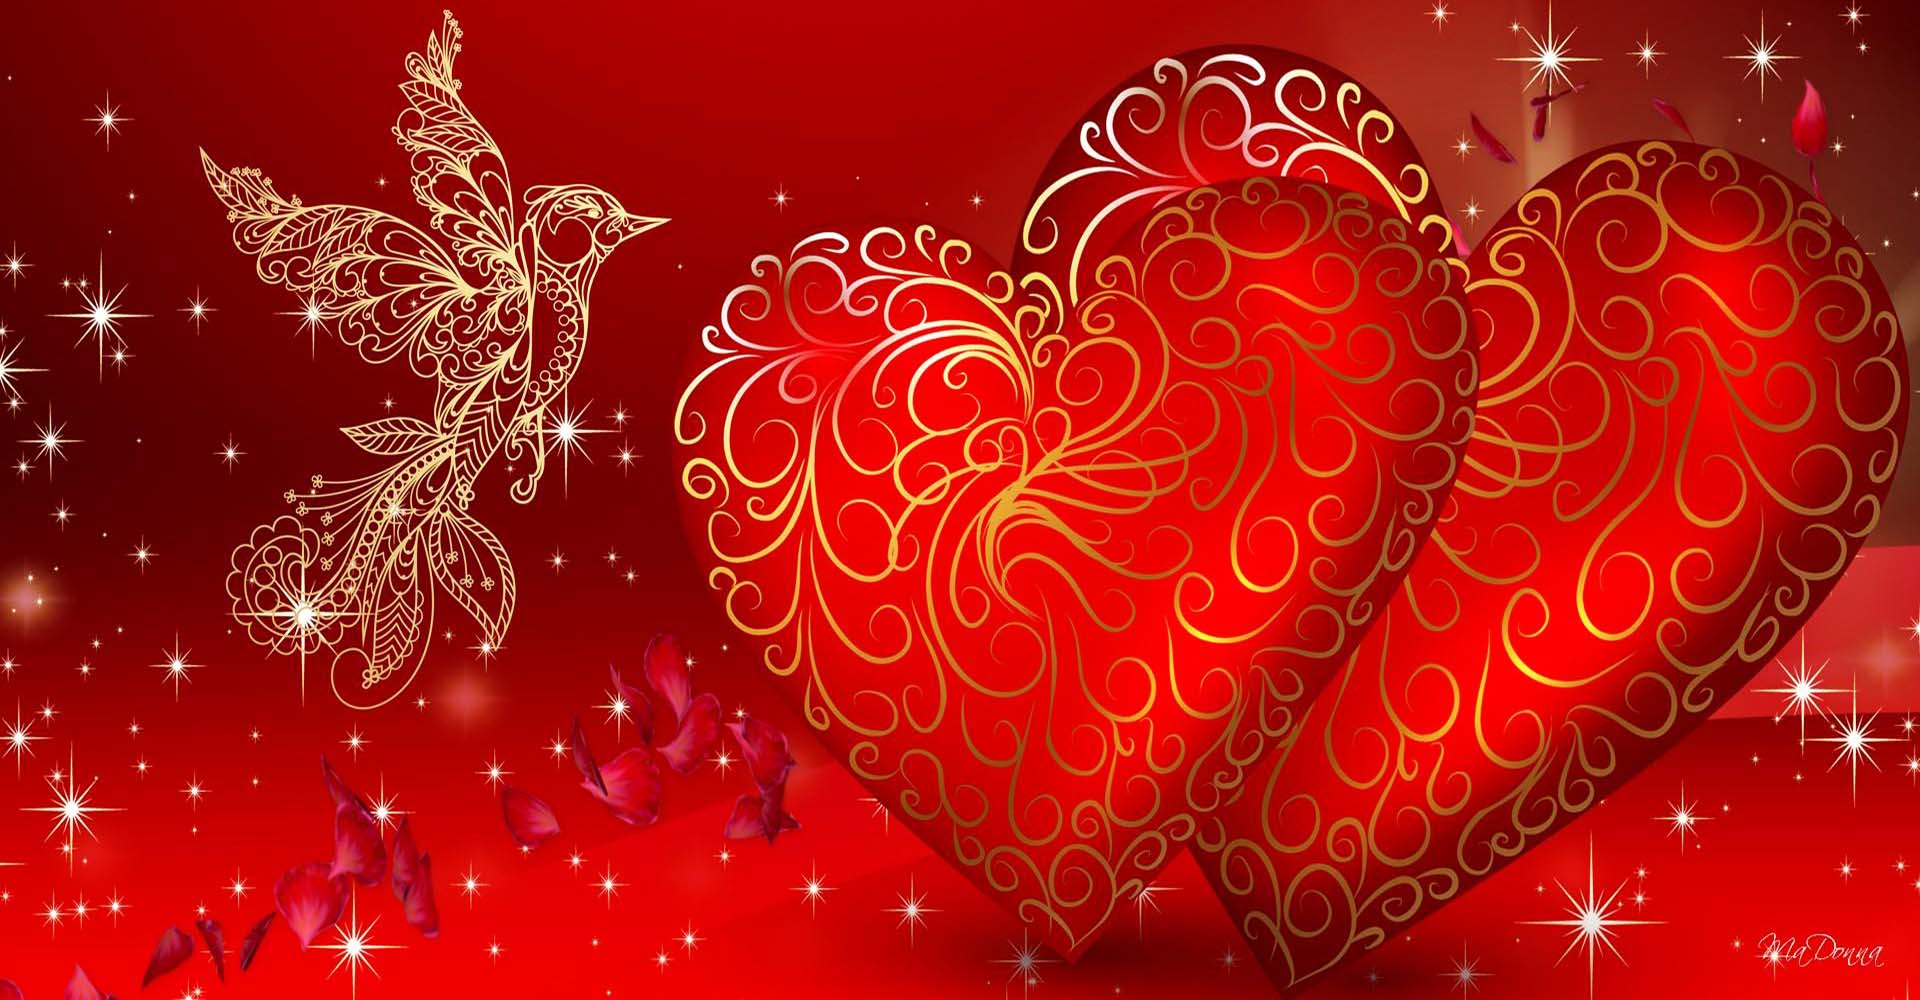 Love Wallpaper Picture : Love Heart Wallpapers 2016 - Wallpaper cave